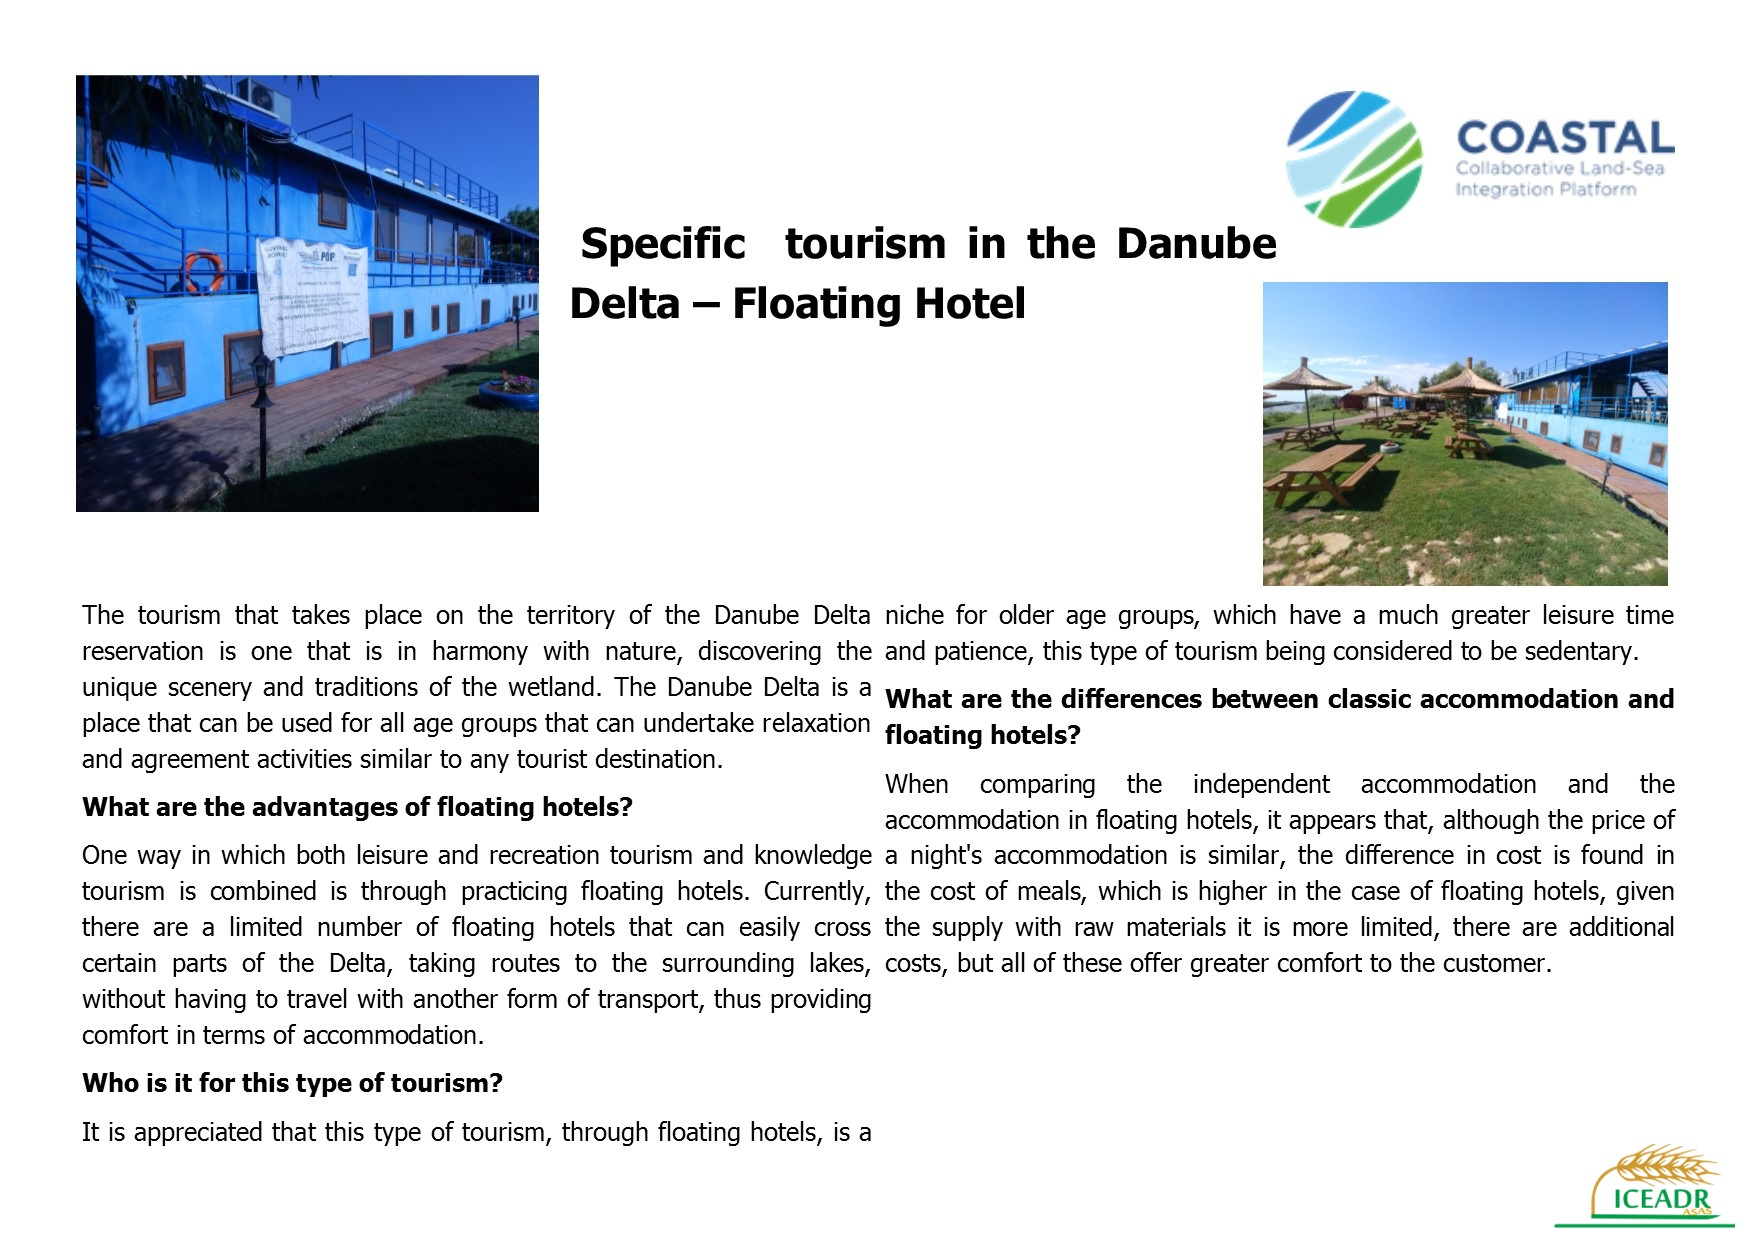 Specific tourism in the Danube Delta –Floating Hotel